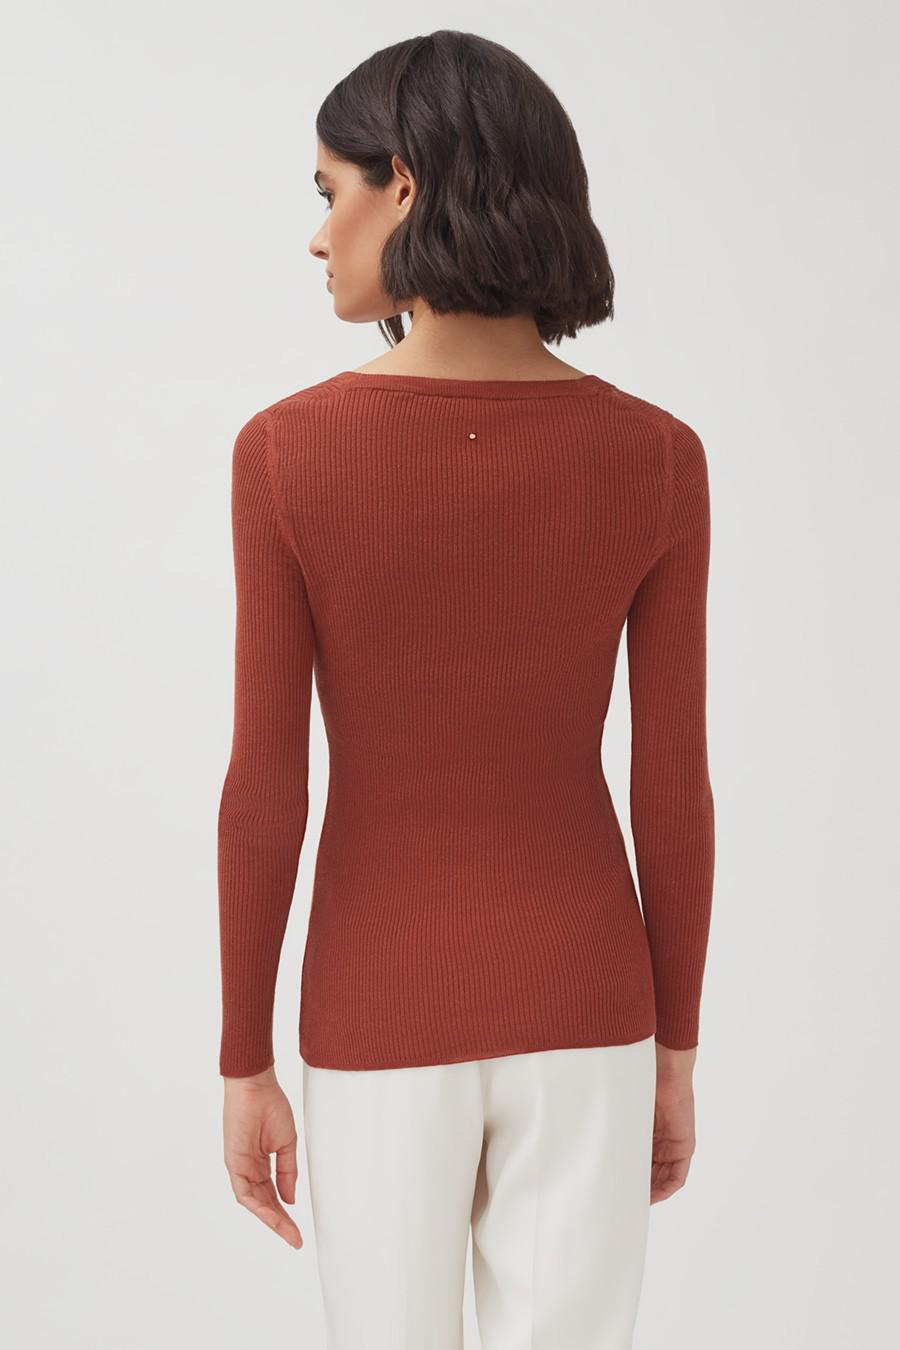 Women's Cotton Cashmere Square Neck Rib Sweater in Terracotta | Size: XL | Cotton Blend by Cuyana 2